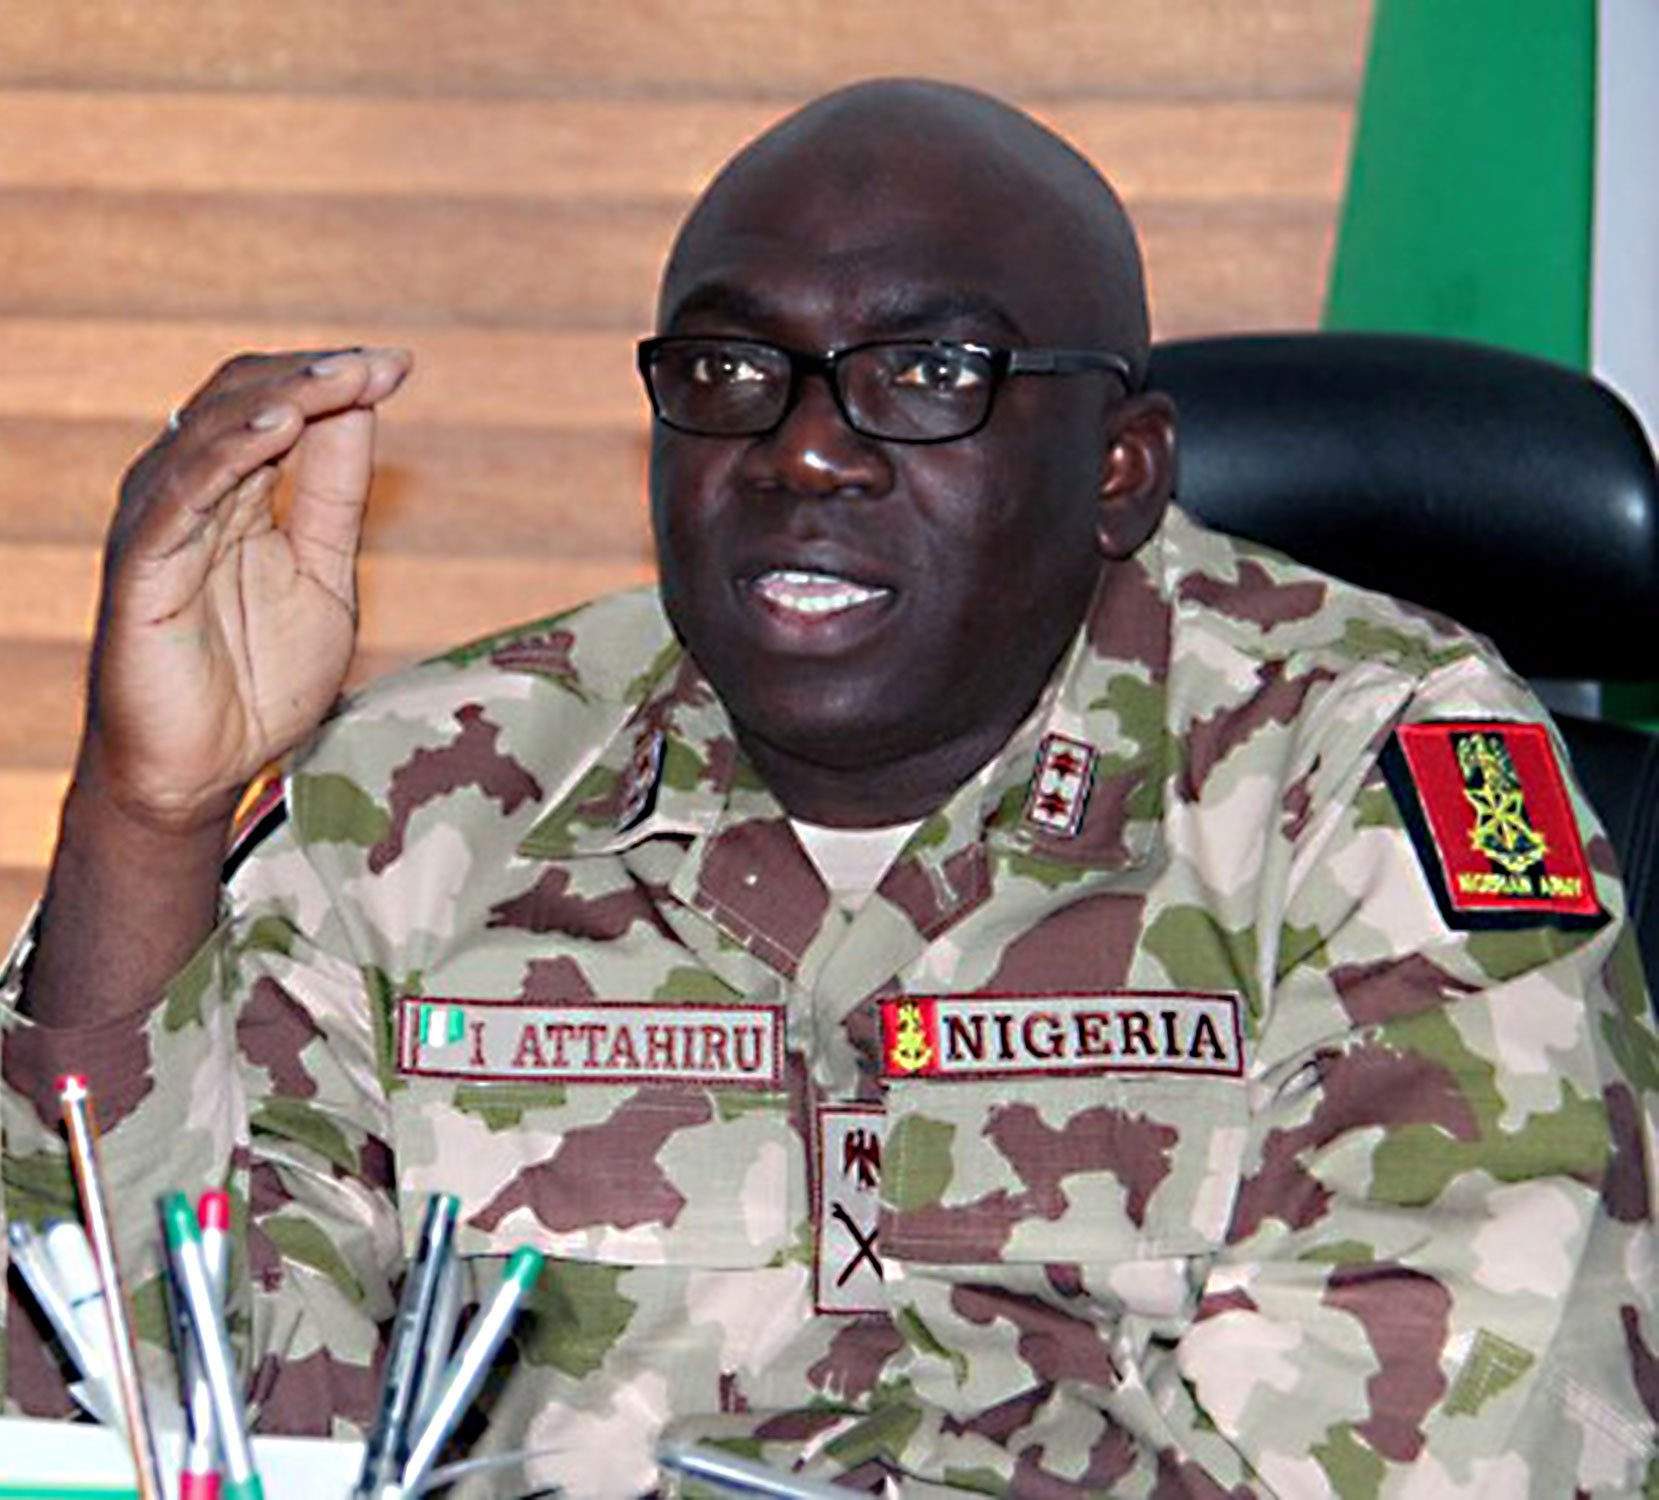 We will deal with you – Nigeria Army Chief tells Dokubo, Igboho, others